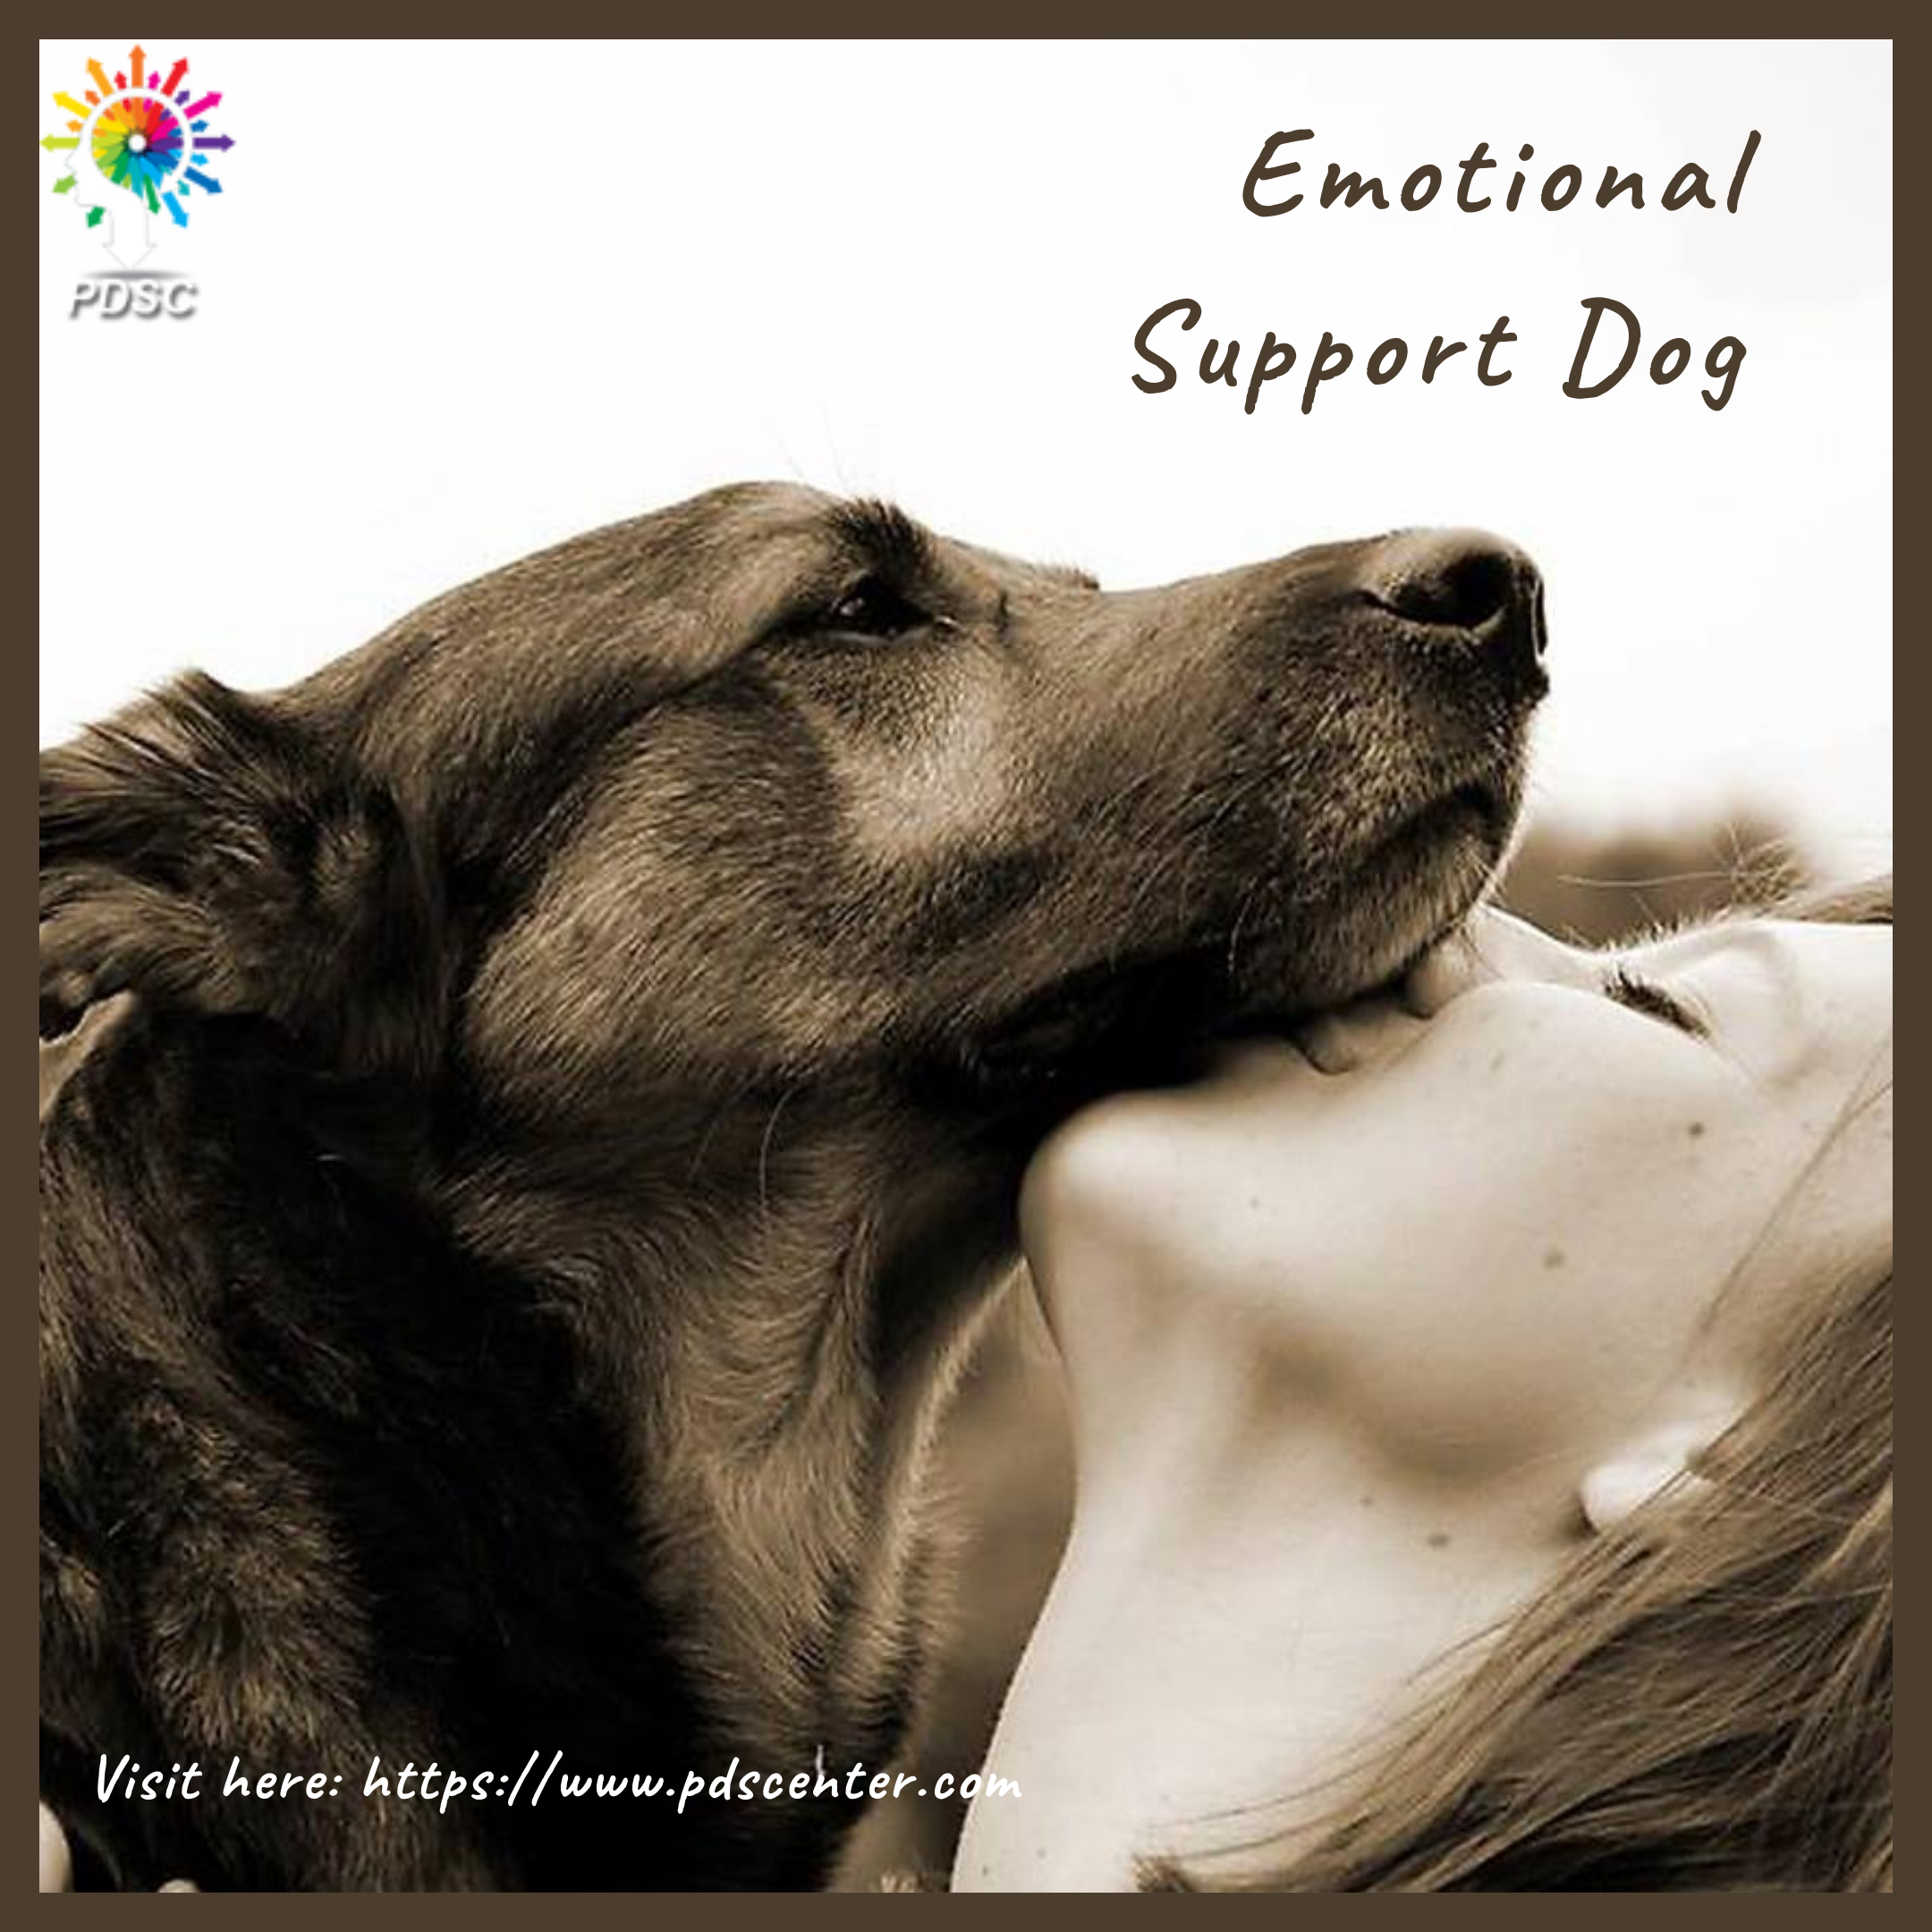 Emotional support animal doctor letter nel 2020